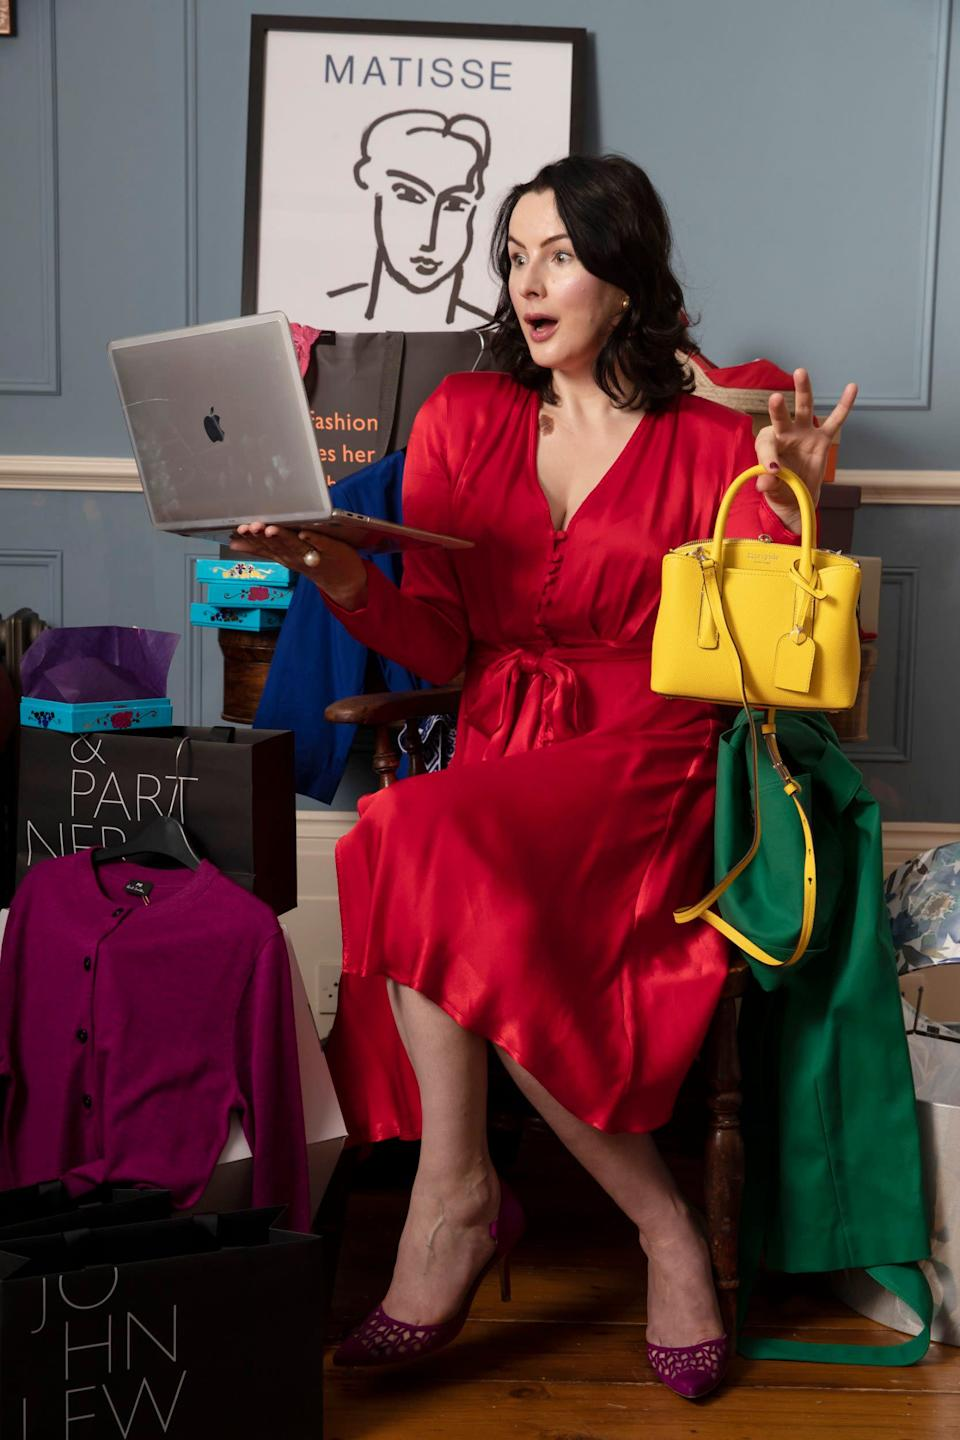 Hannah Betts' top buys included a Matisse poster and a yellow crossbody bag